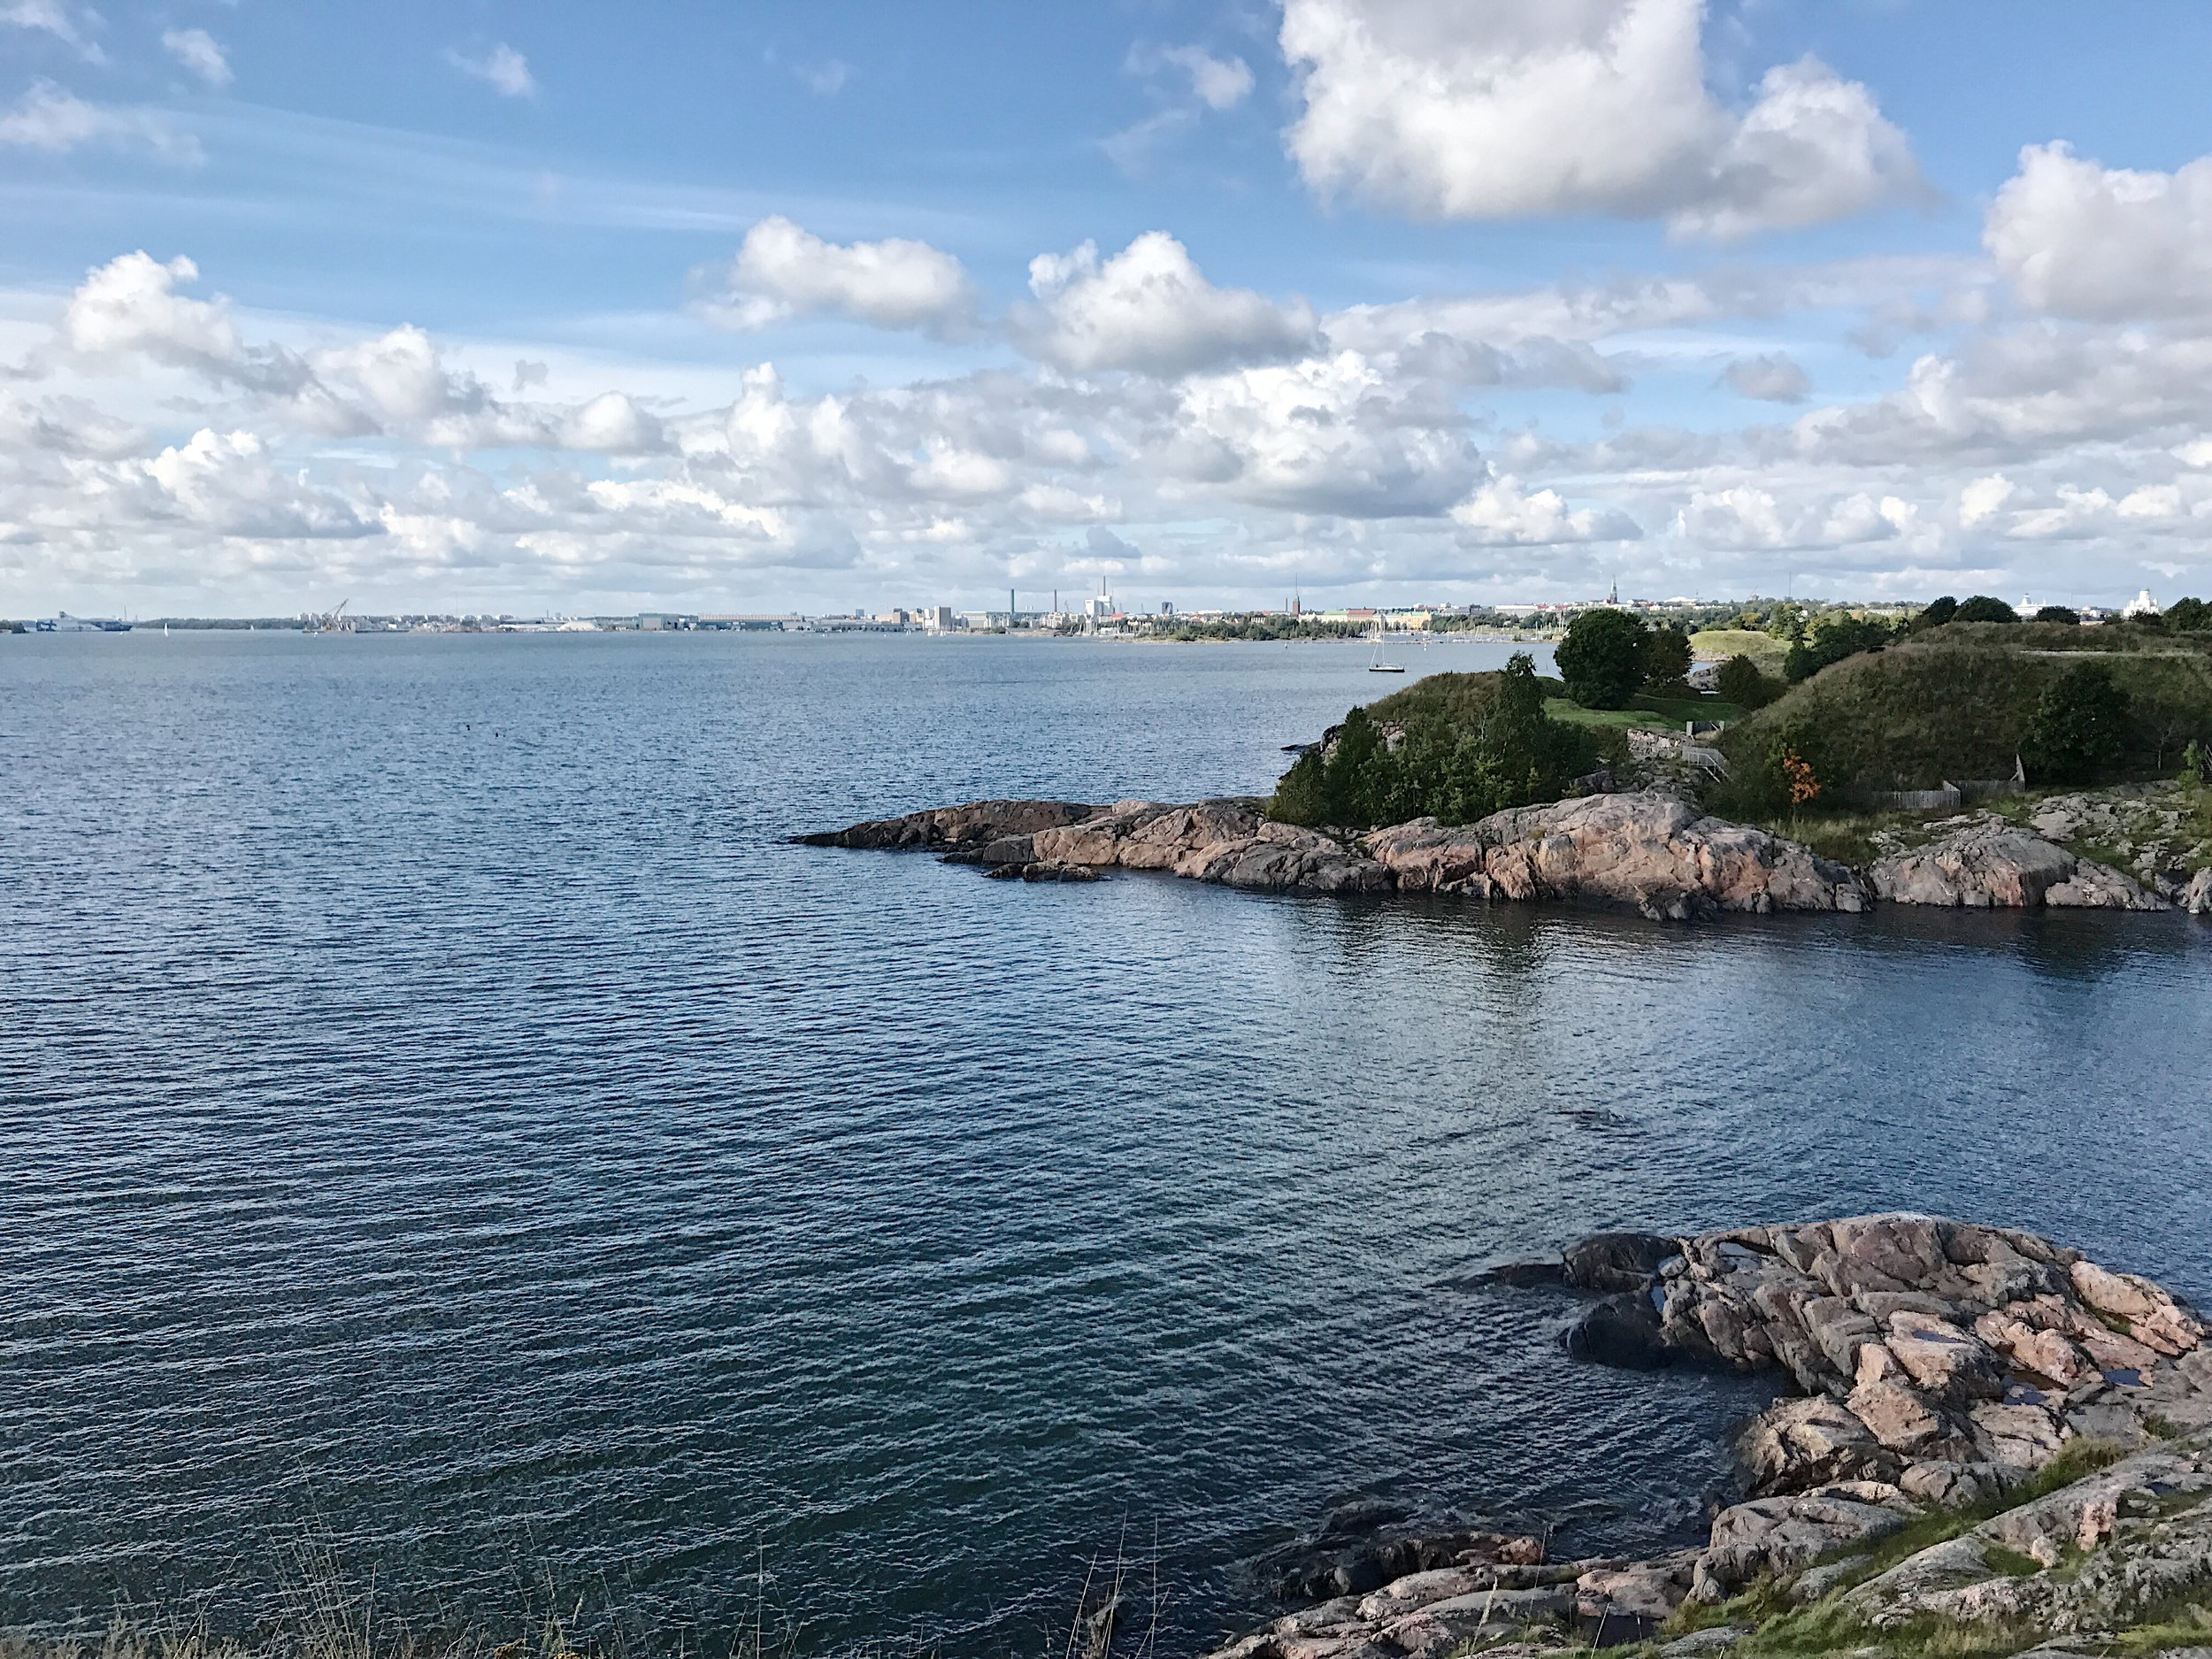 Overlooking Helsinki at the other side